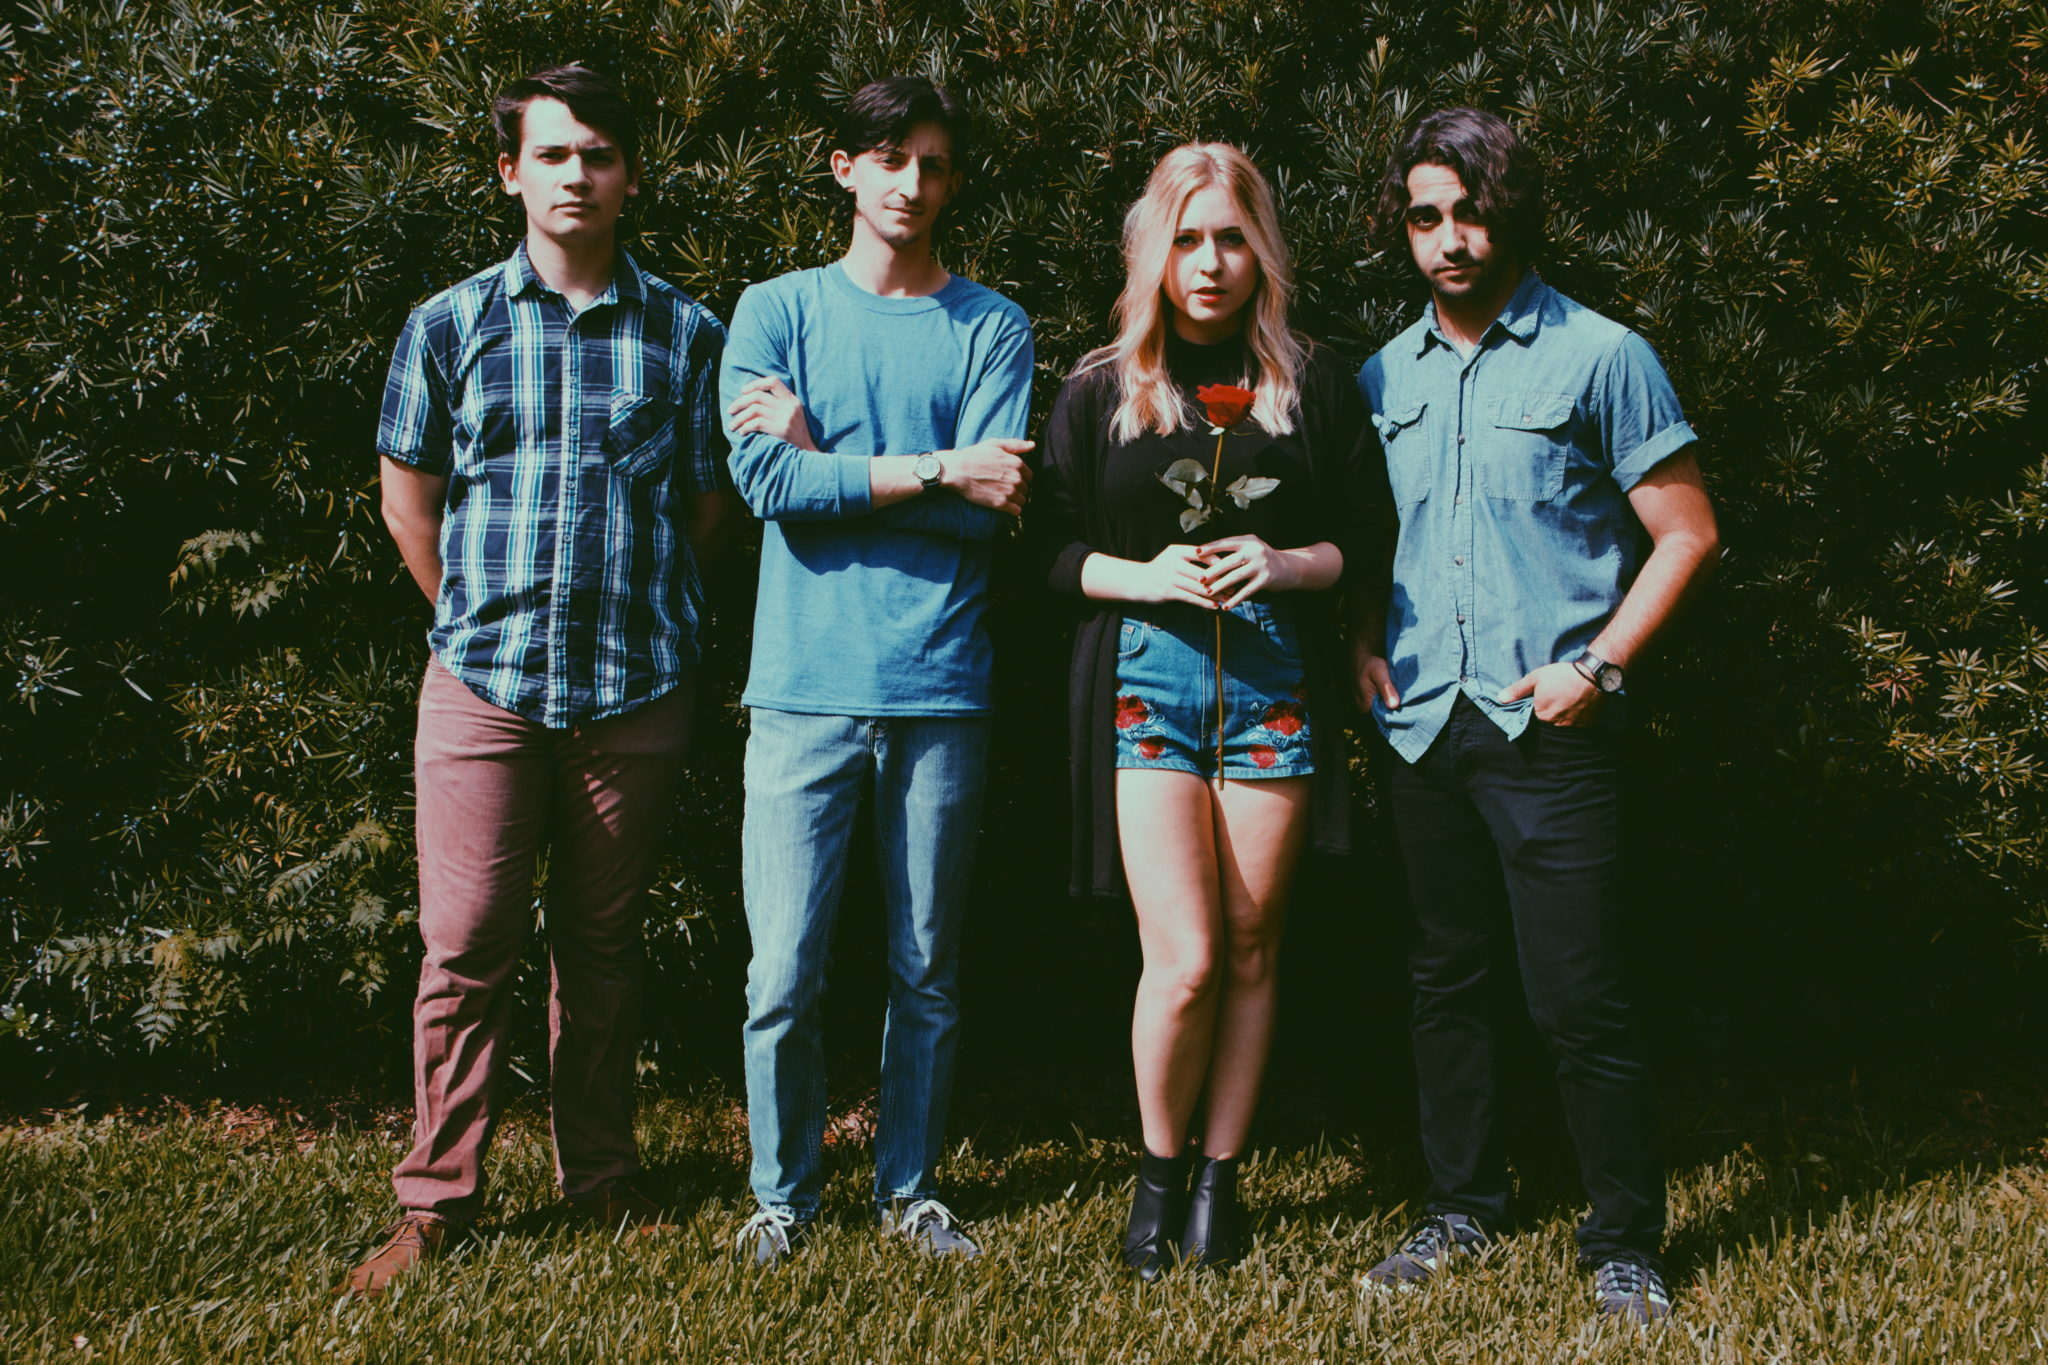 PREMIERE: Blonde Roses find their voice again with 'Hell Or High Water' EP